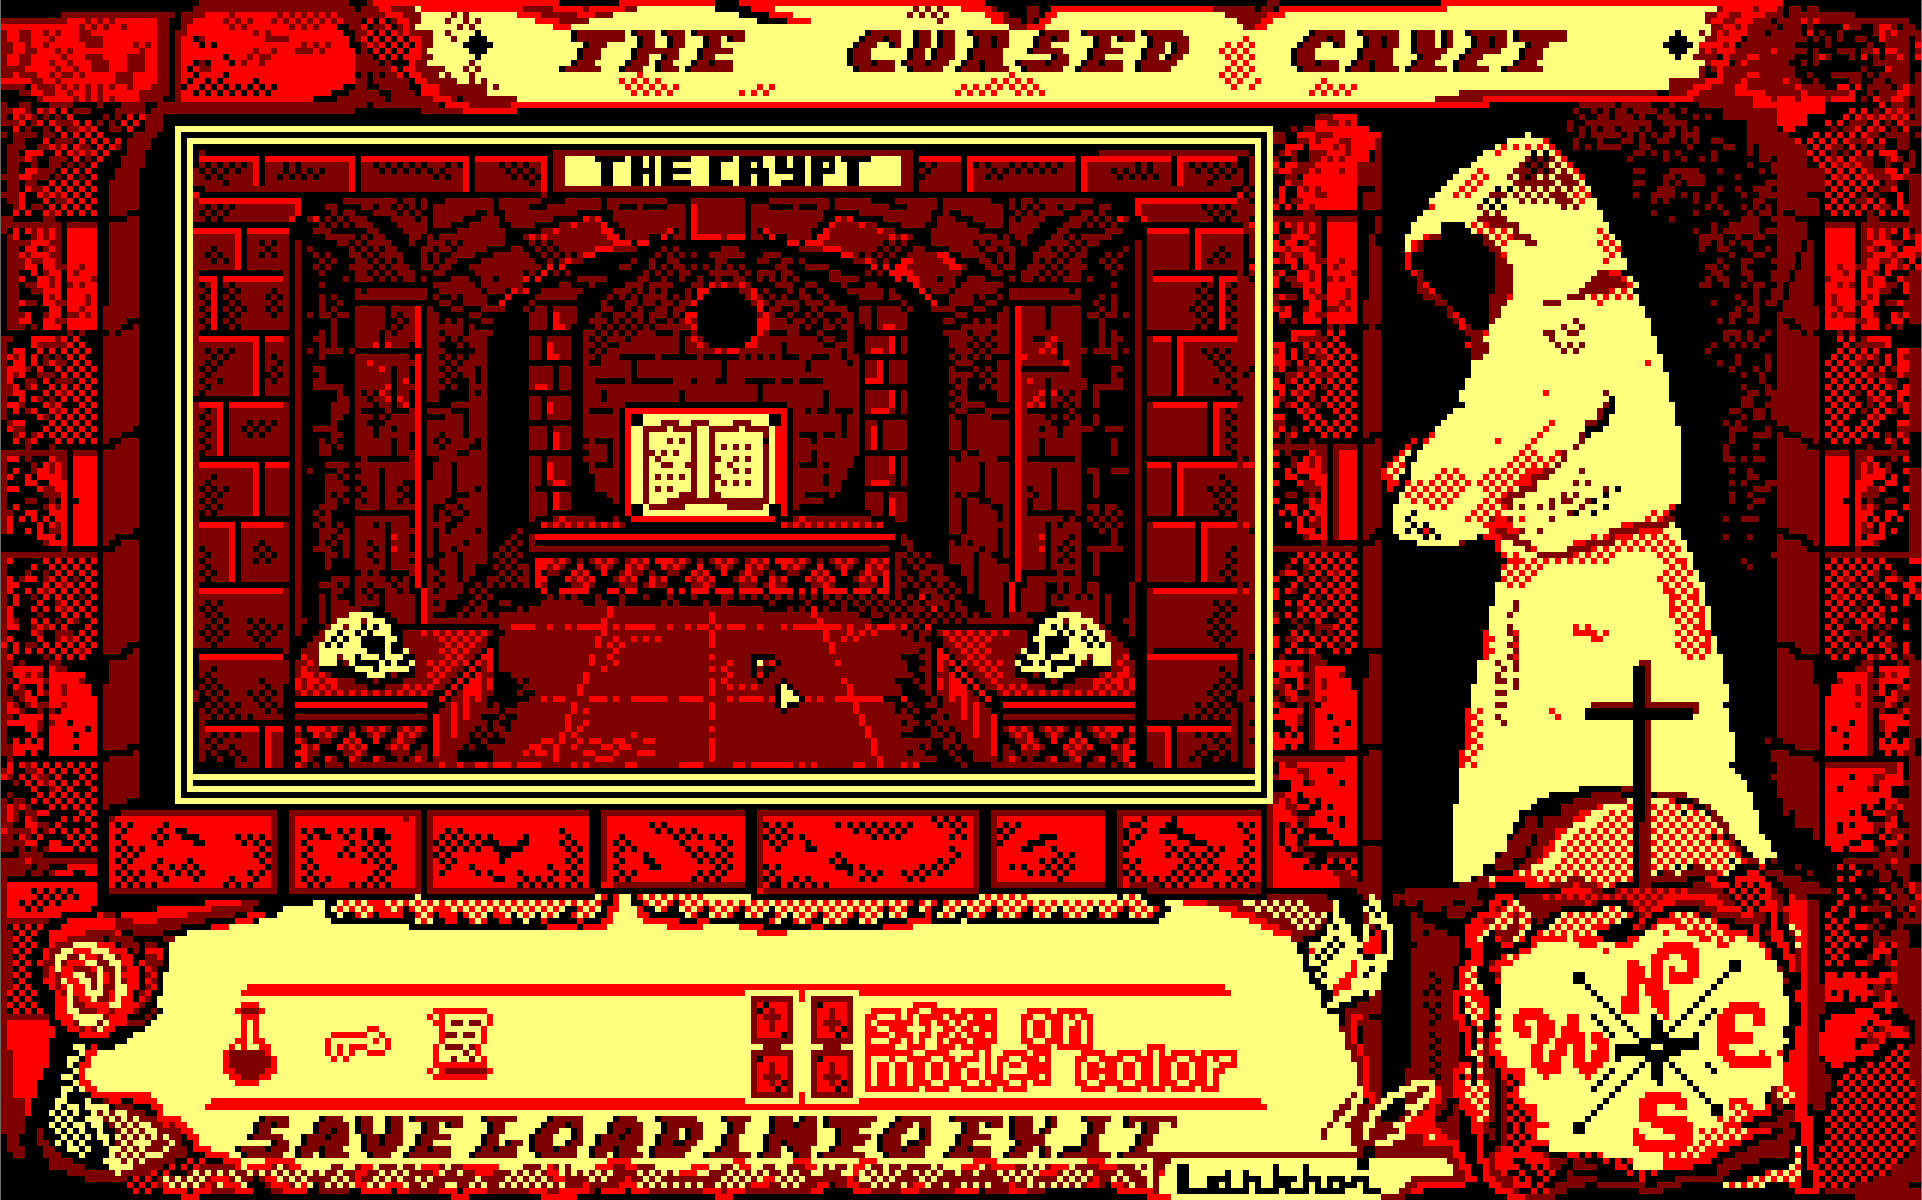 Screenshot 1 of Black Sect 2: The Cursed Crypt (PnC Remake)